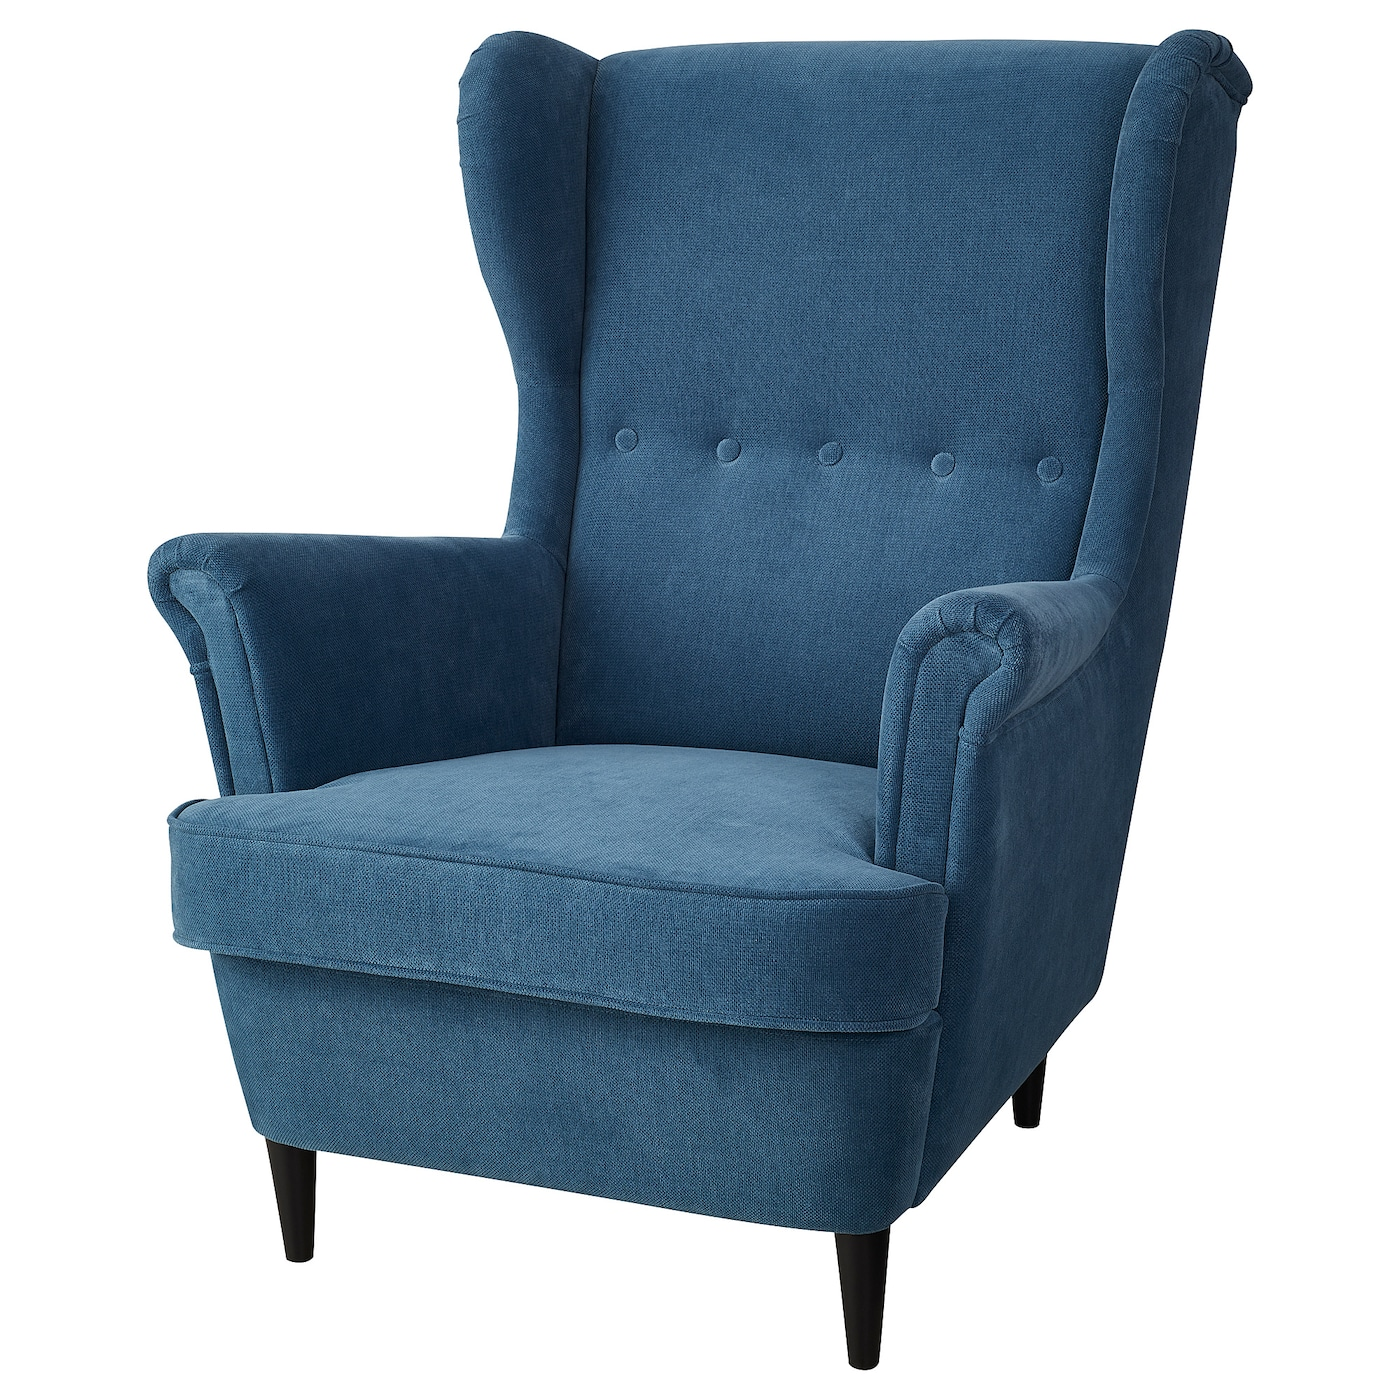 Blue Chair On Ikea Strandmon Wing Chair 10 Year Guarantee Read About The Terms In Guarantee Brochure Wing Tallmyra Turquoise